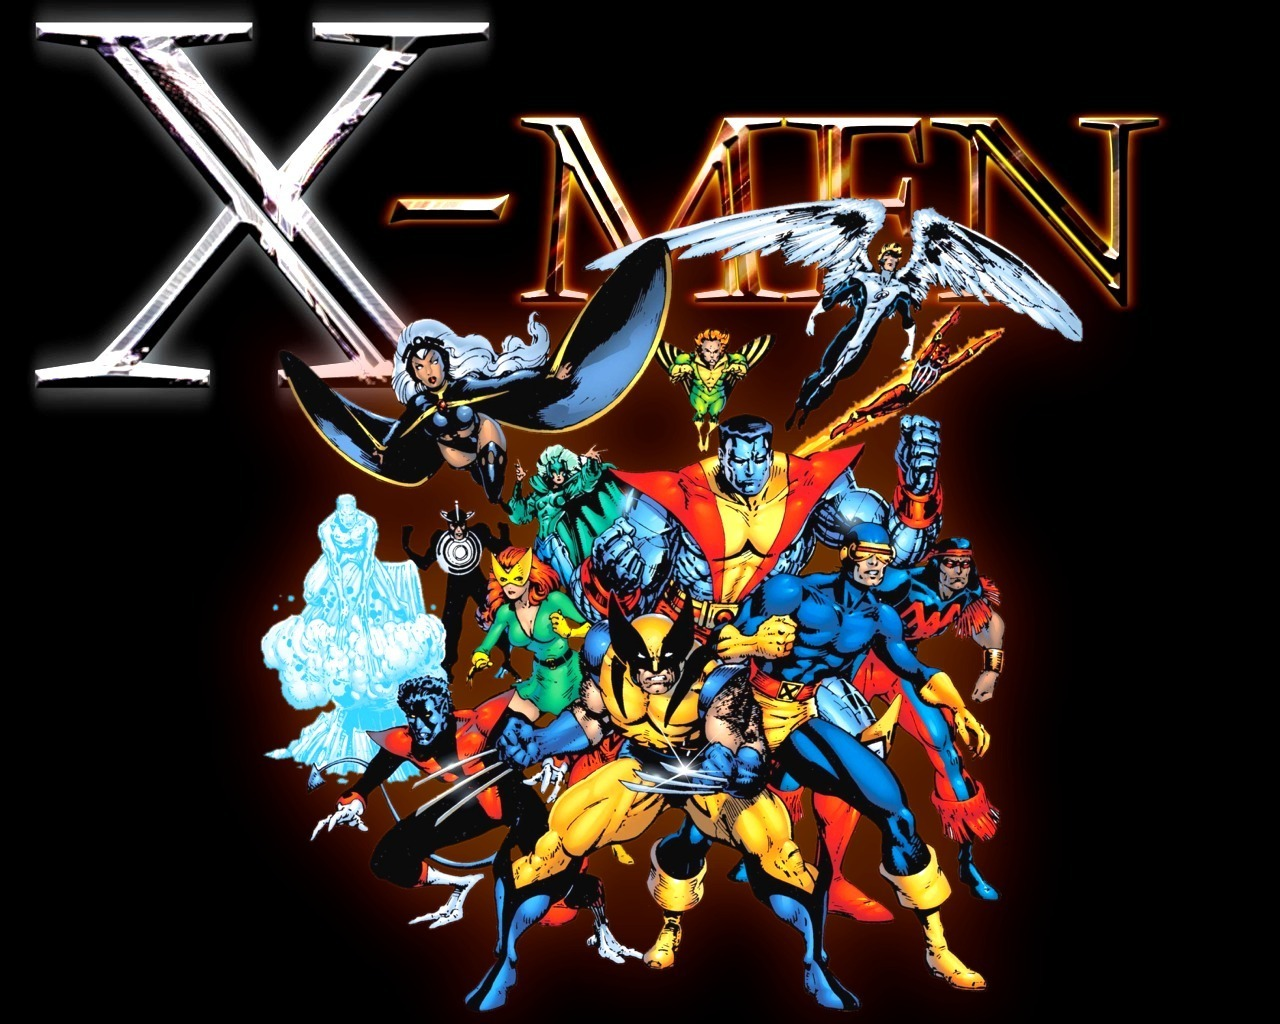 men   X Men Wallpaper 7050808 1280x1024